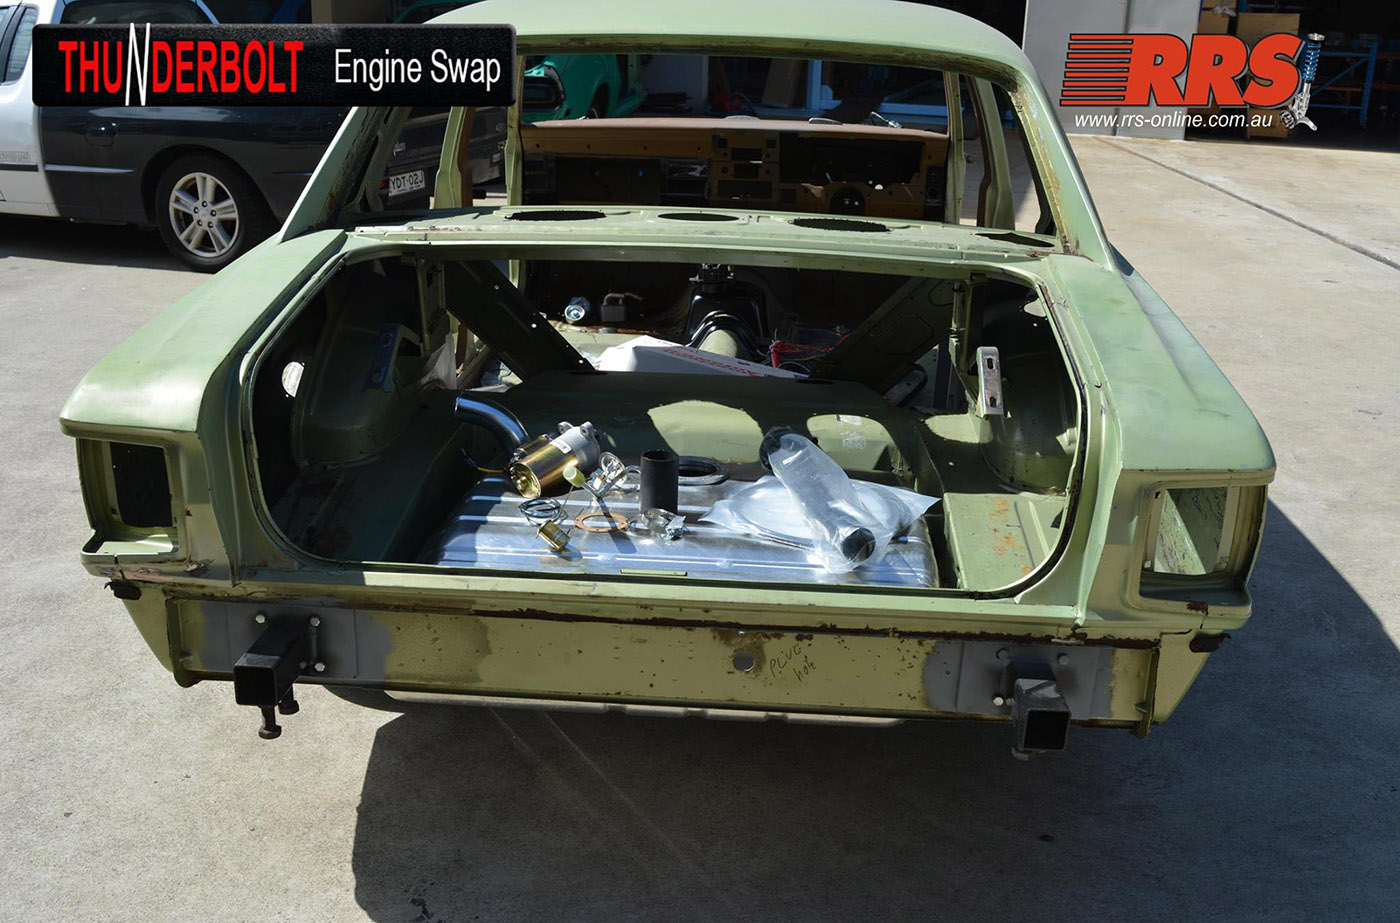 Coyote Swap Kit For Classic Fords Engine Depot 1972 Ford Maverick Wiring Harness Kits